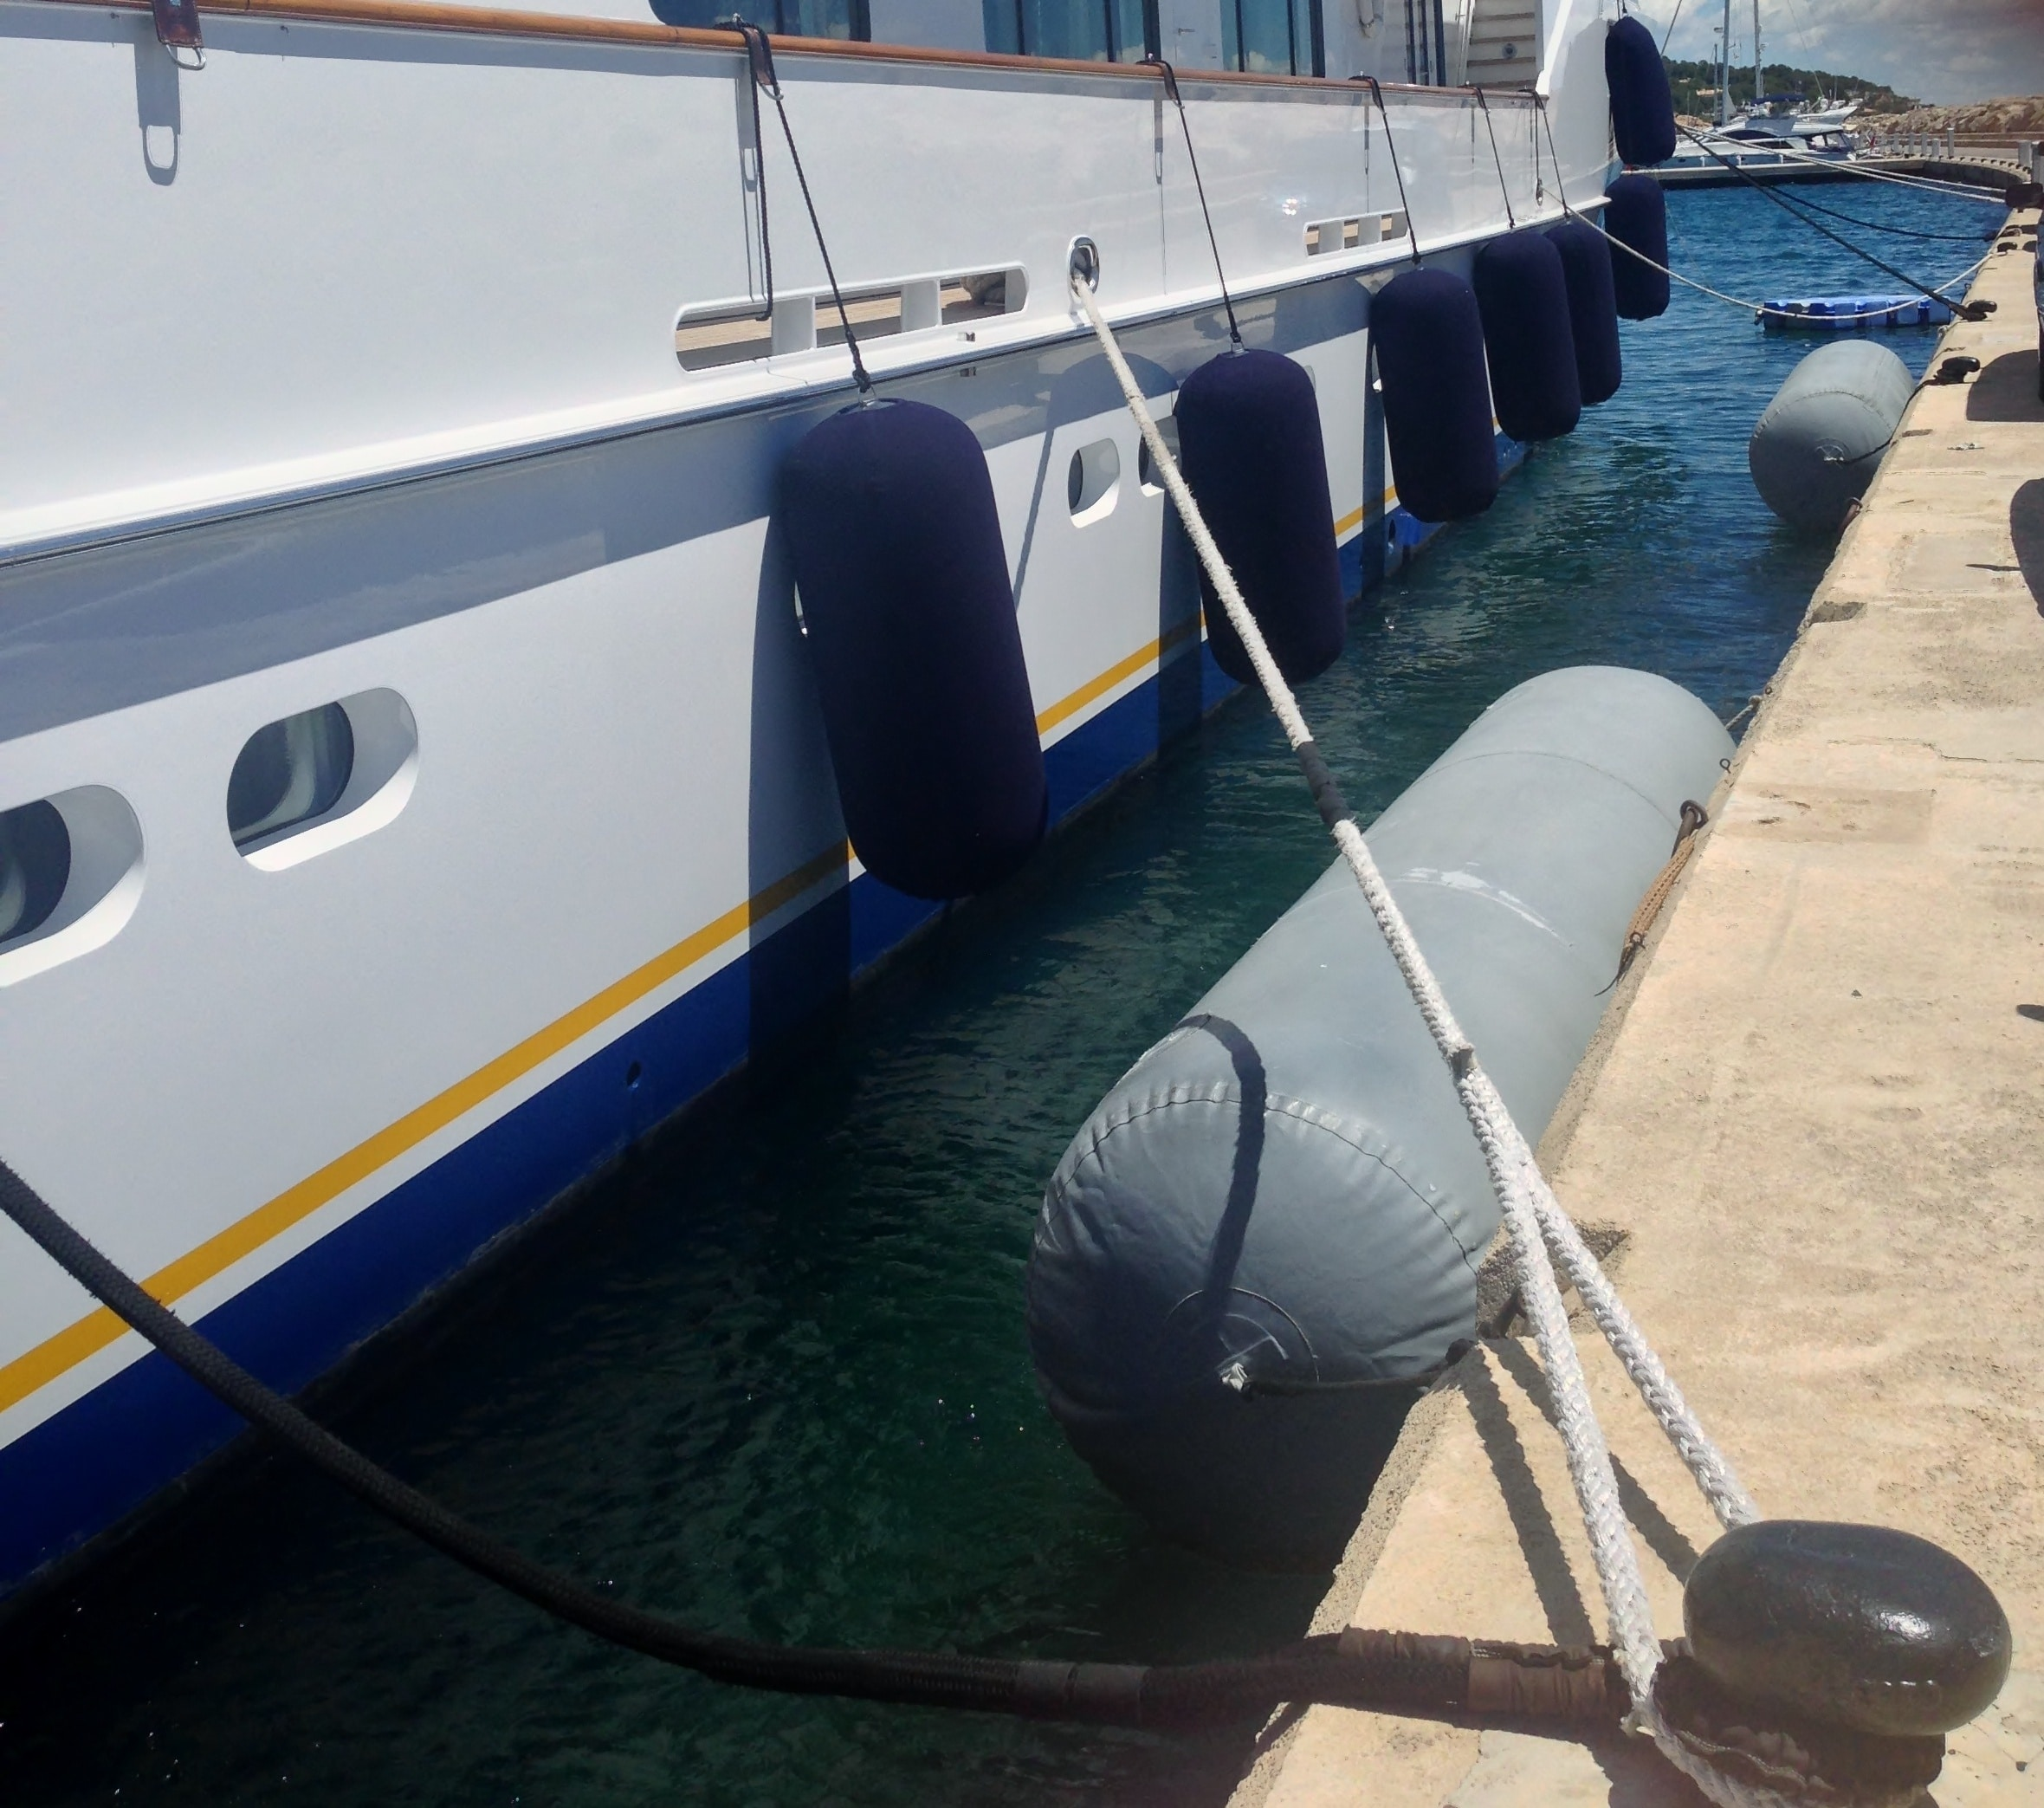 Docking Your Mega Yacht at Boathouse Yacht Facility in Fort Lauderdale FL